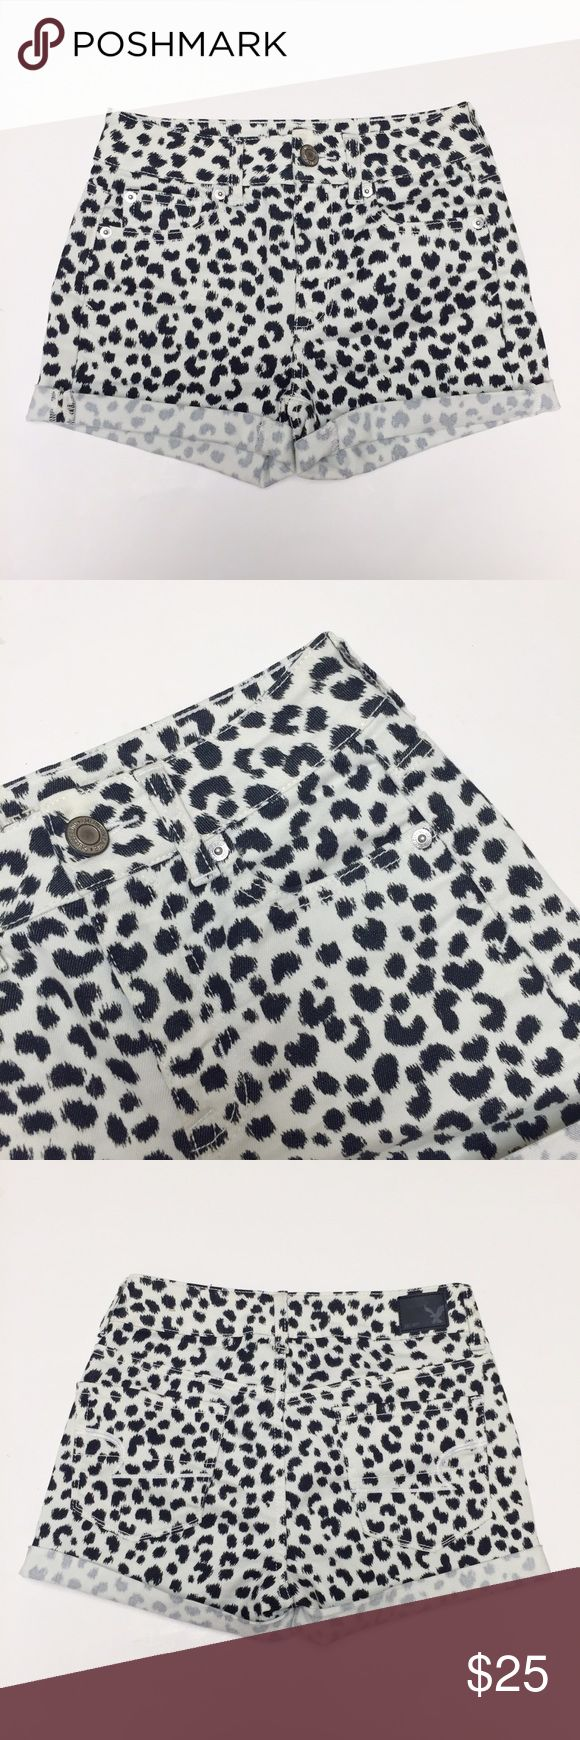 American Eagle - Leopard Print Shorts American Eagle leopard print shorts. Worn once. Excellent condition. 💟 Offers welcome. 🙅🏻 No trades. 🎀 Bundle for discount. American Eagle Outfitters Shorts